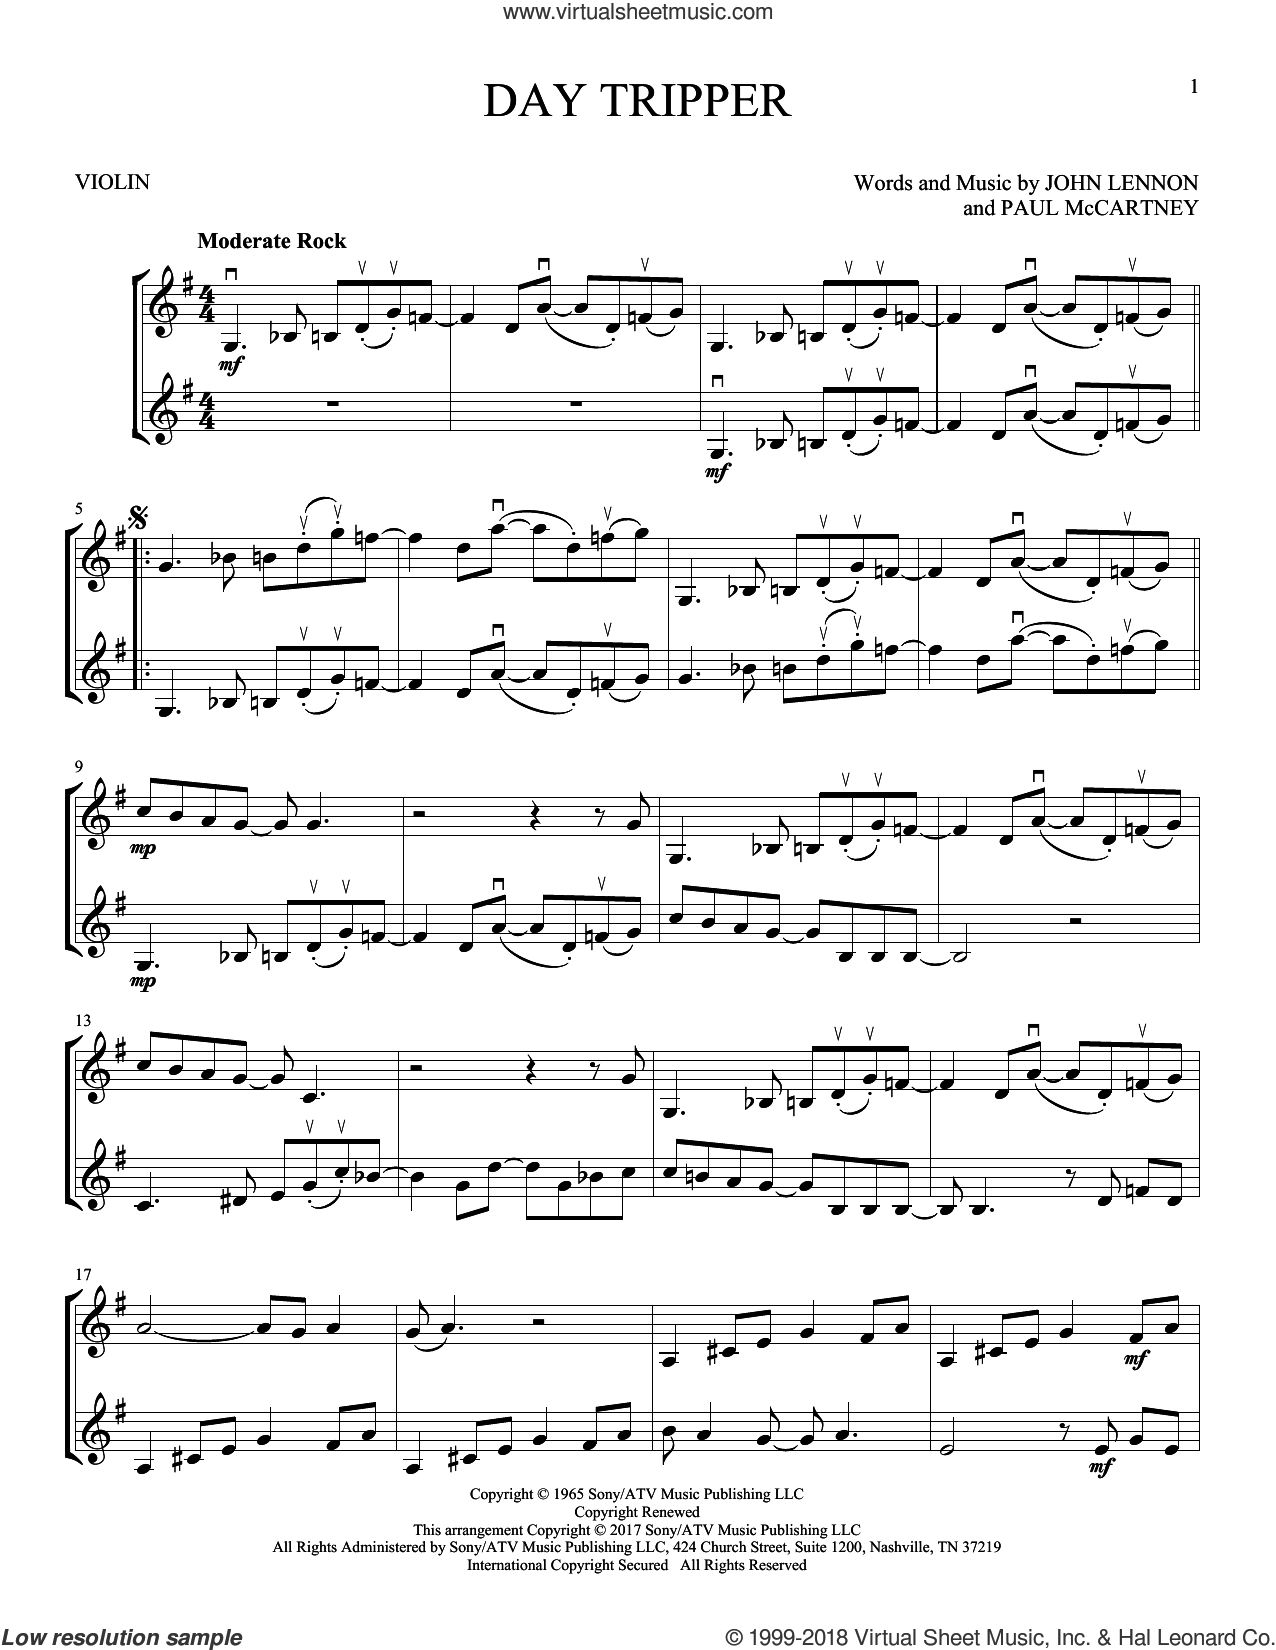 Day Tripper sheet music for two violins (duets, violin duets) by The Beatles, John Lennon and Paul McCartney, intermediate skill level